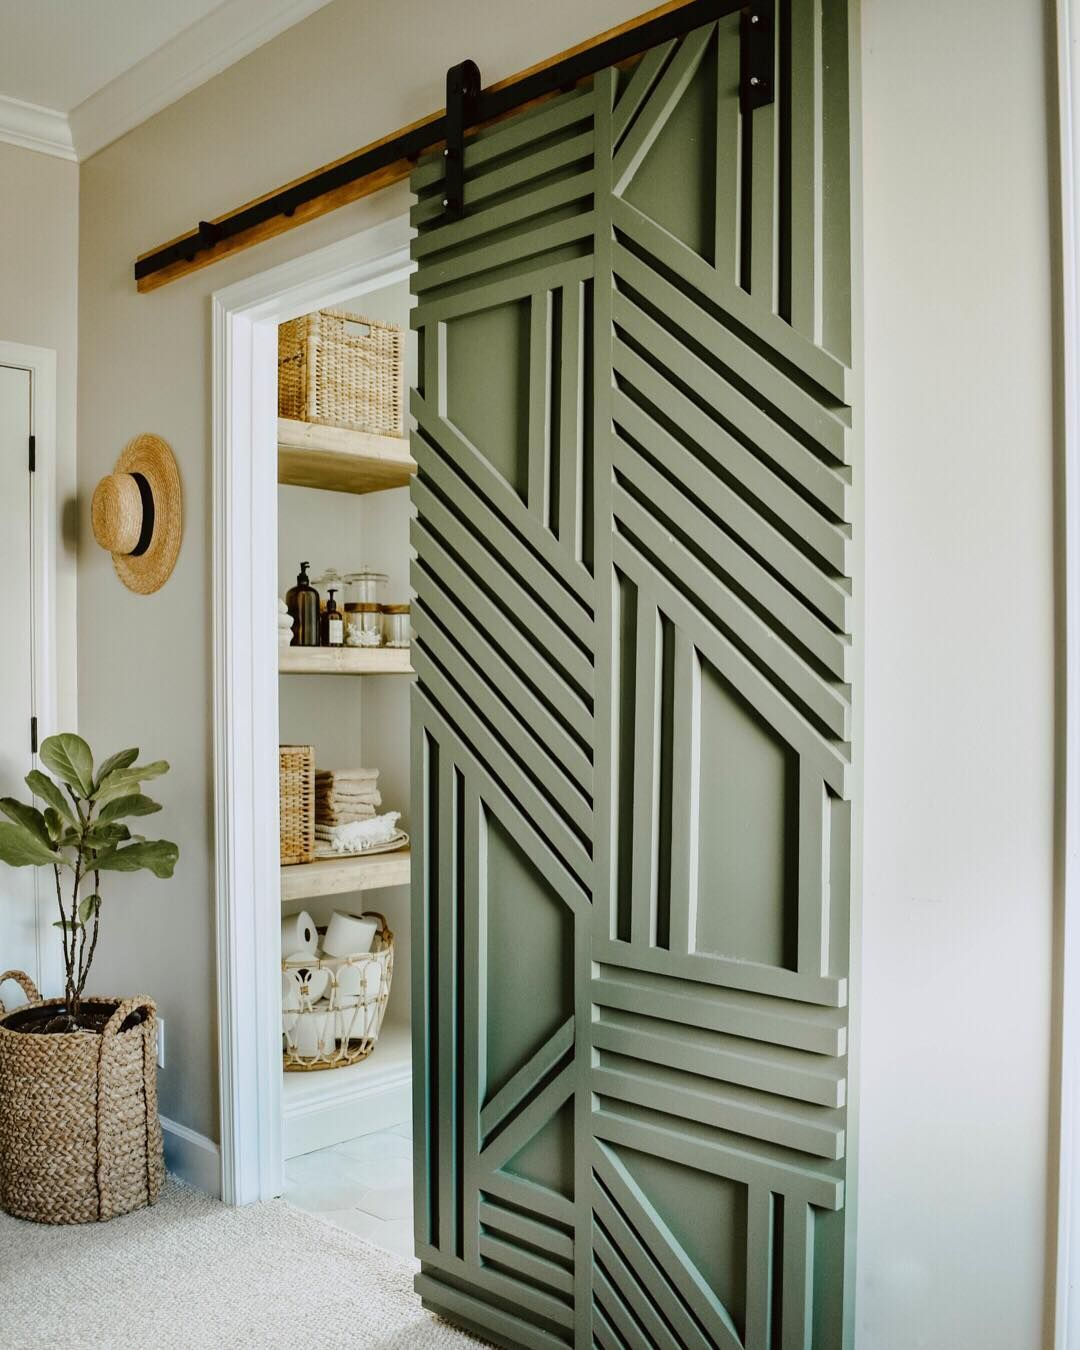 House On Longwood Lane Diy On Instagram Say Yes To Stepping Out Of Your Design Comfort Zone You Won T Regret It Y All Home House Design Home Renovation